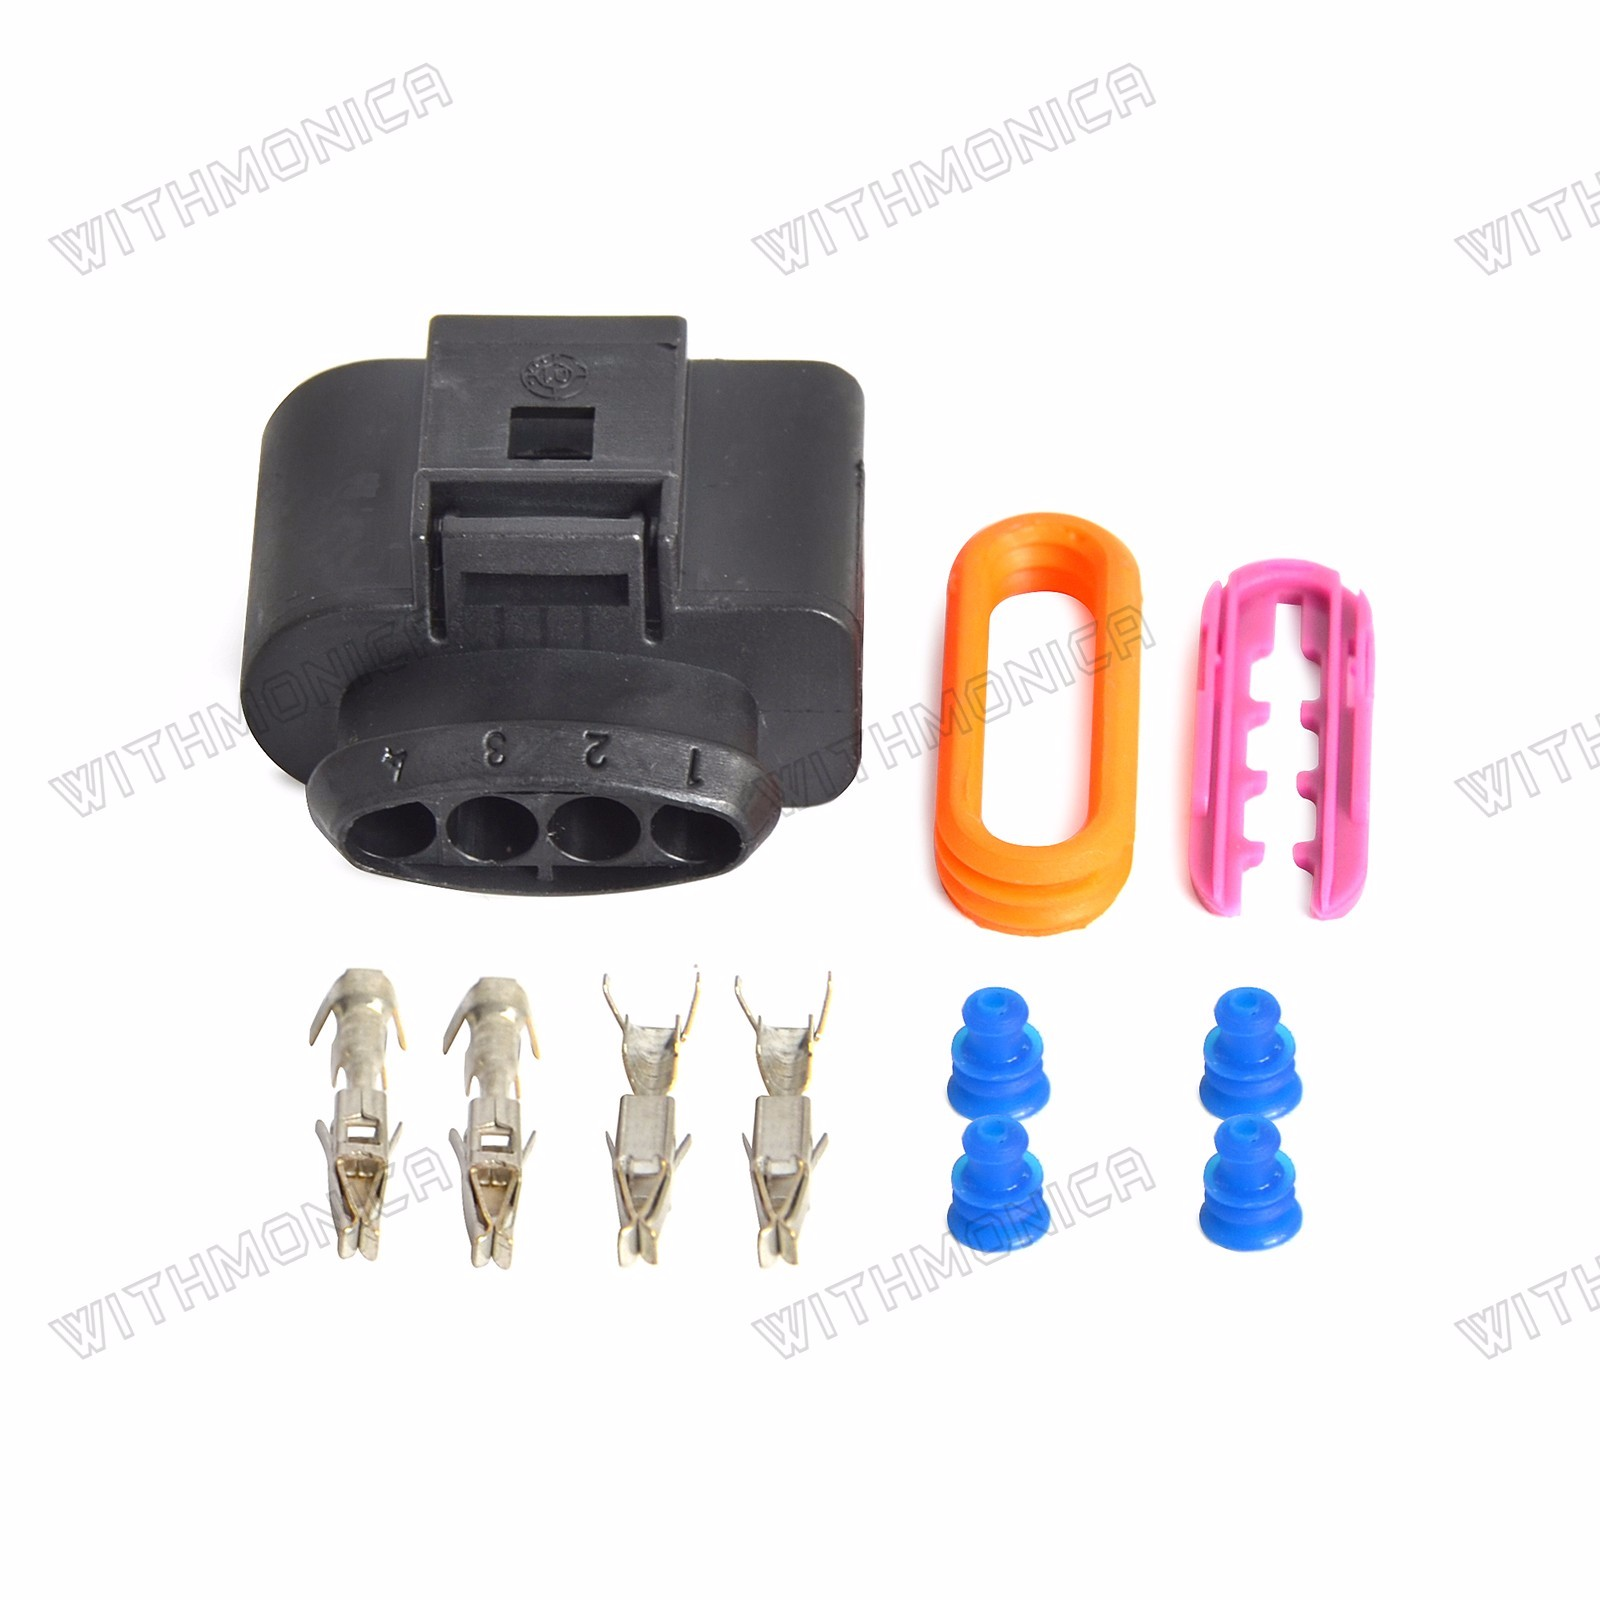 ignition coil wiring harness connector repair kit for audi a4 a6 vw rh ebay com OEM Wiring Harness Connectors BMW Wiring Harness Connectors